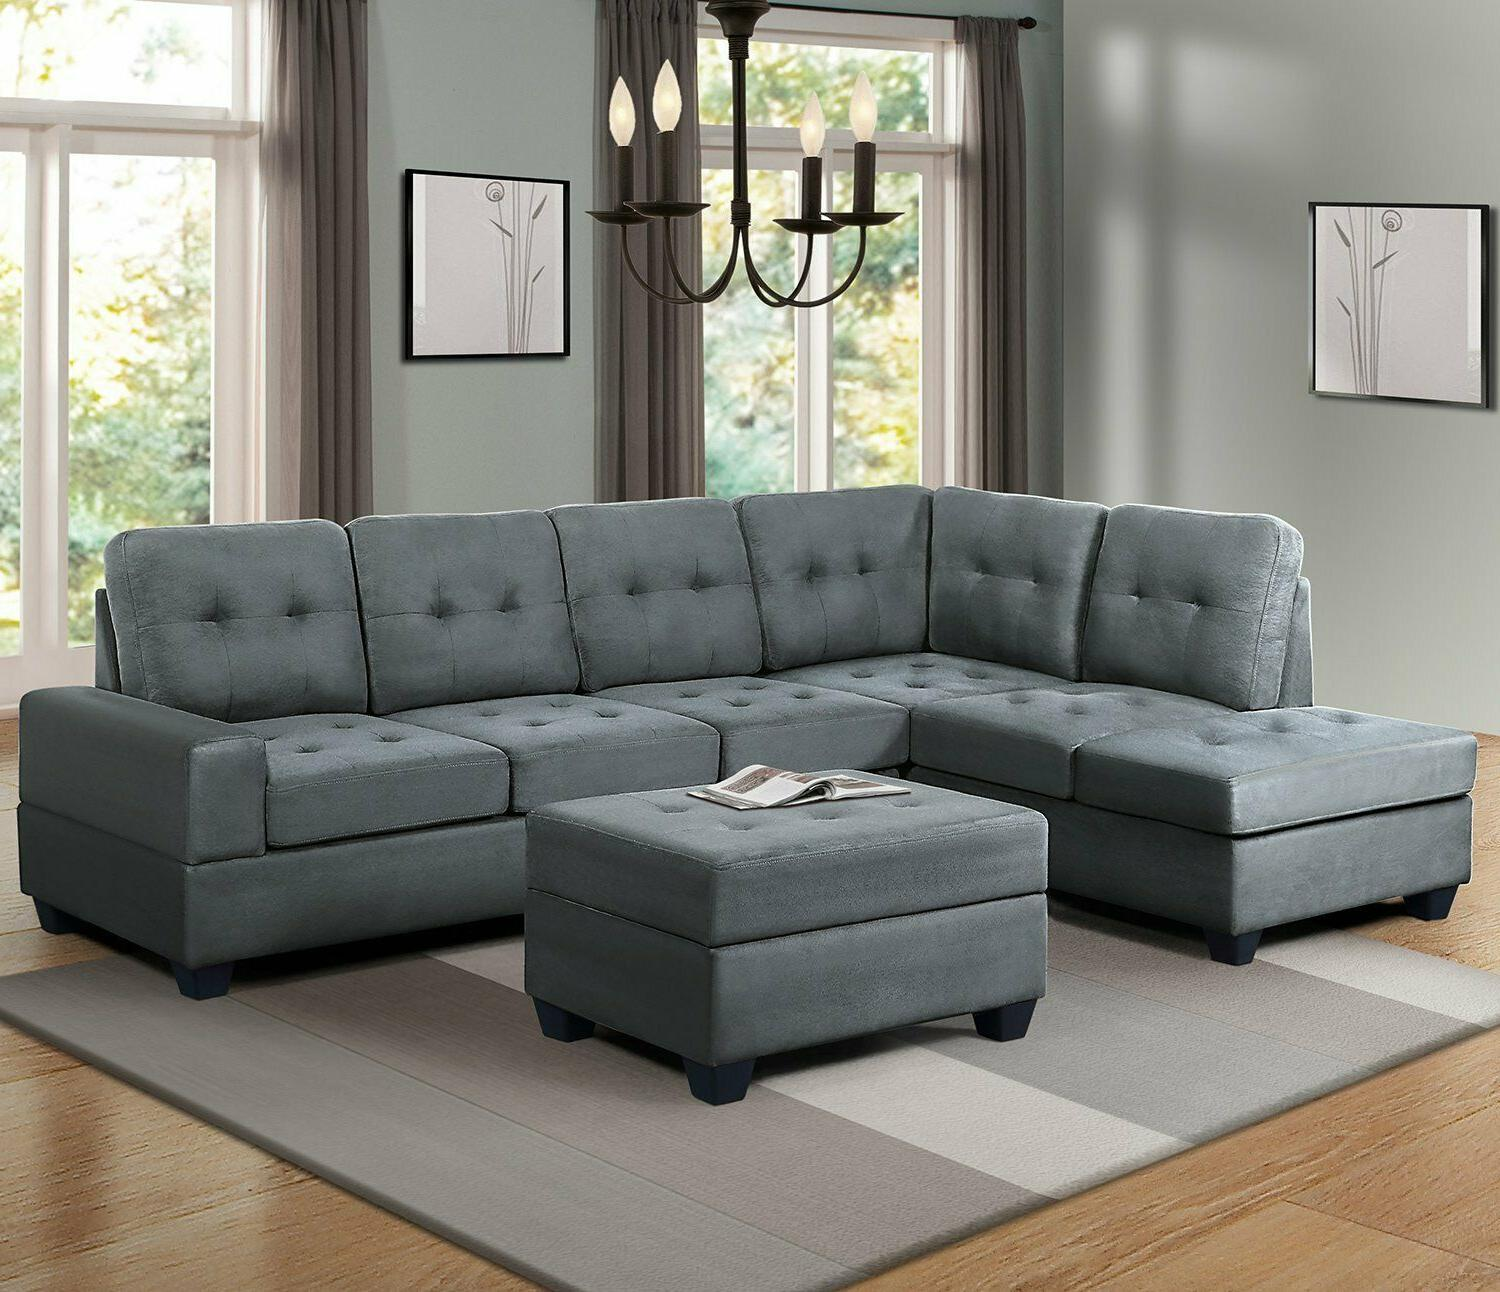 3 Sectional Microfiber Chaise Storage